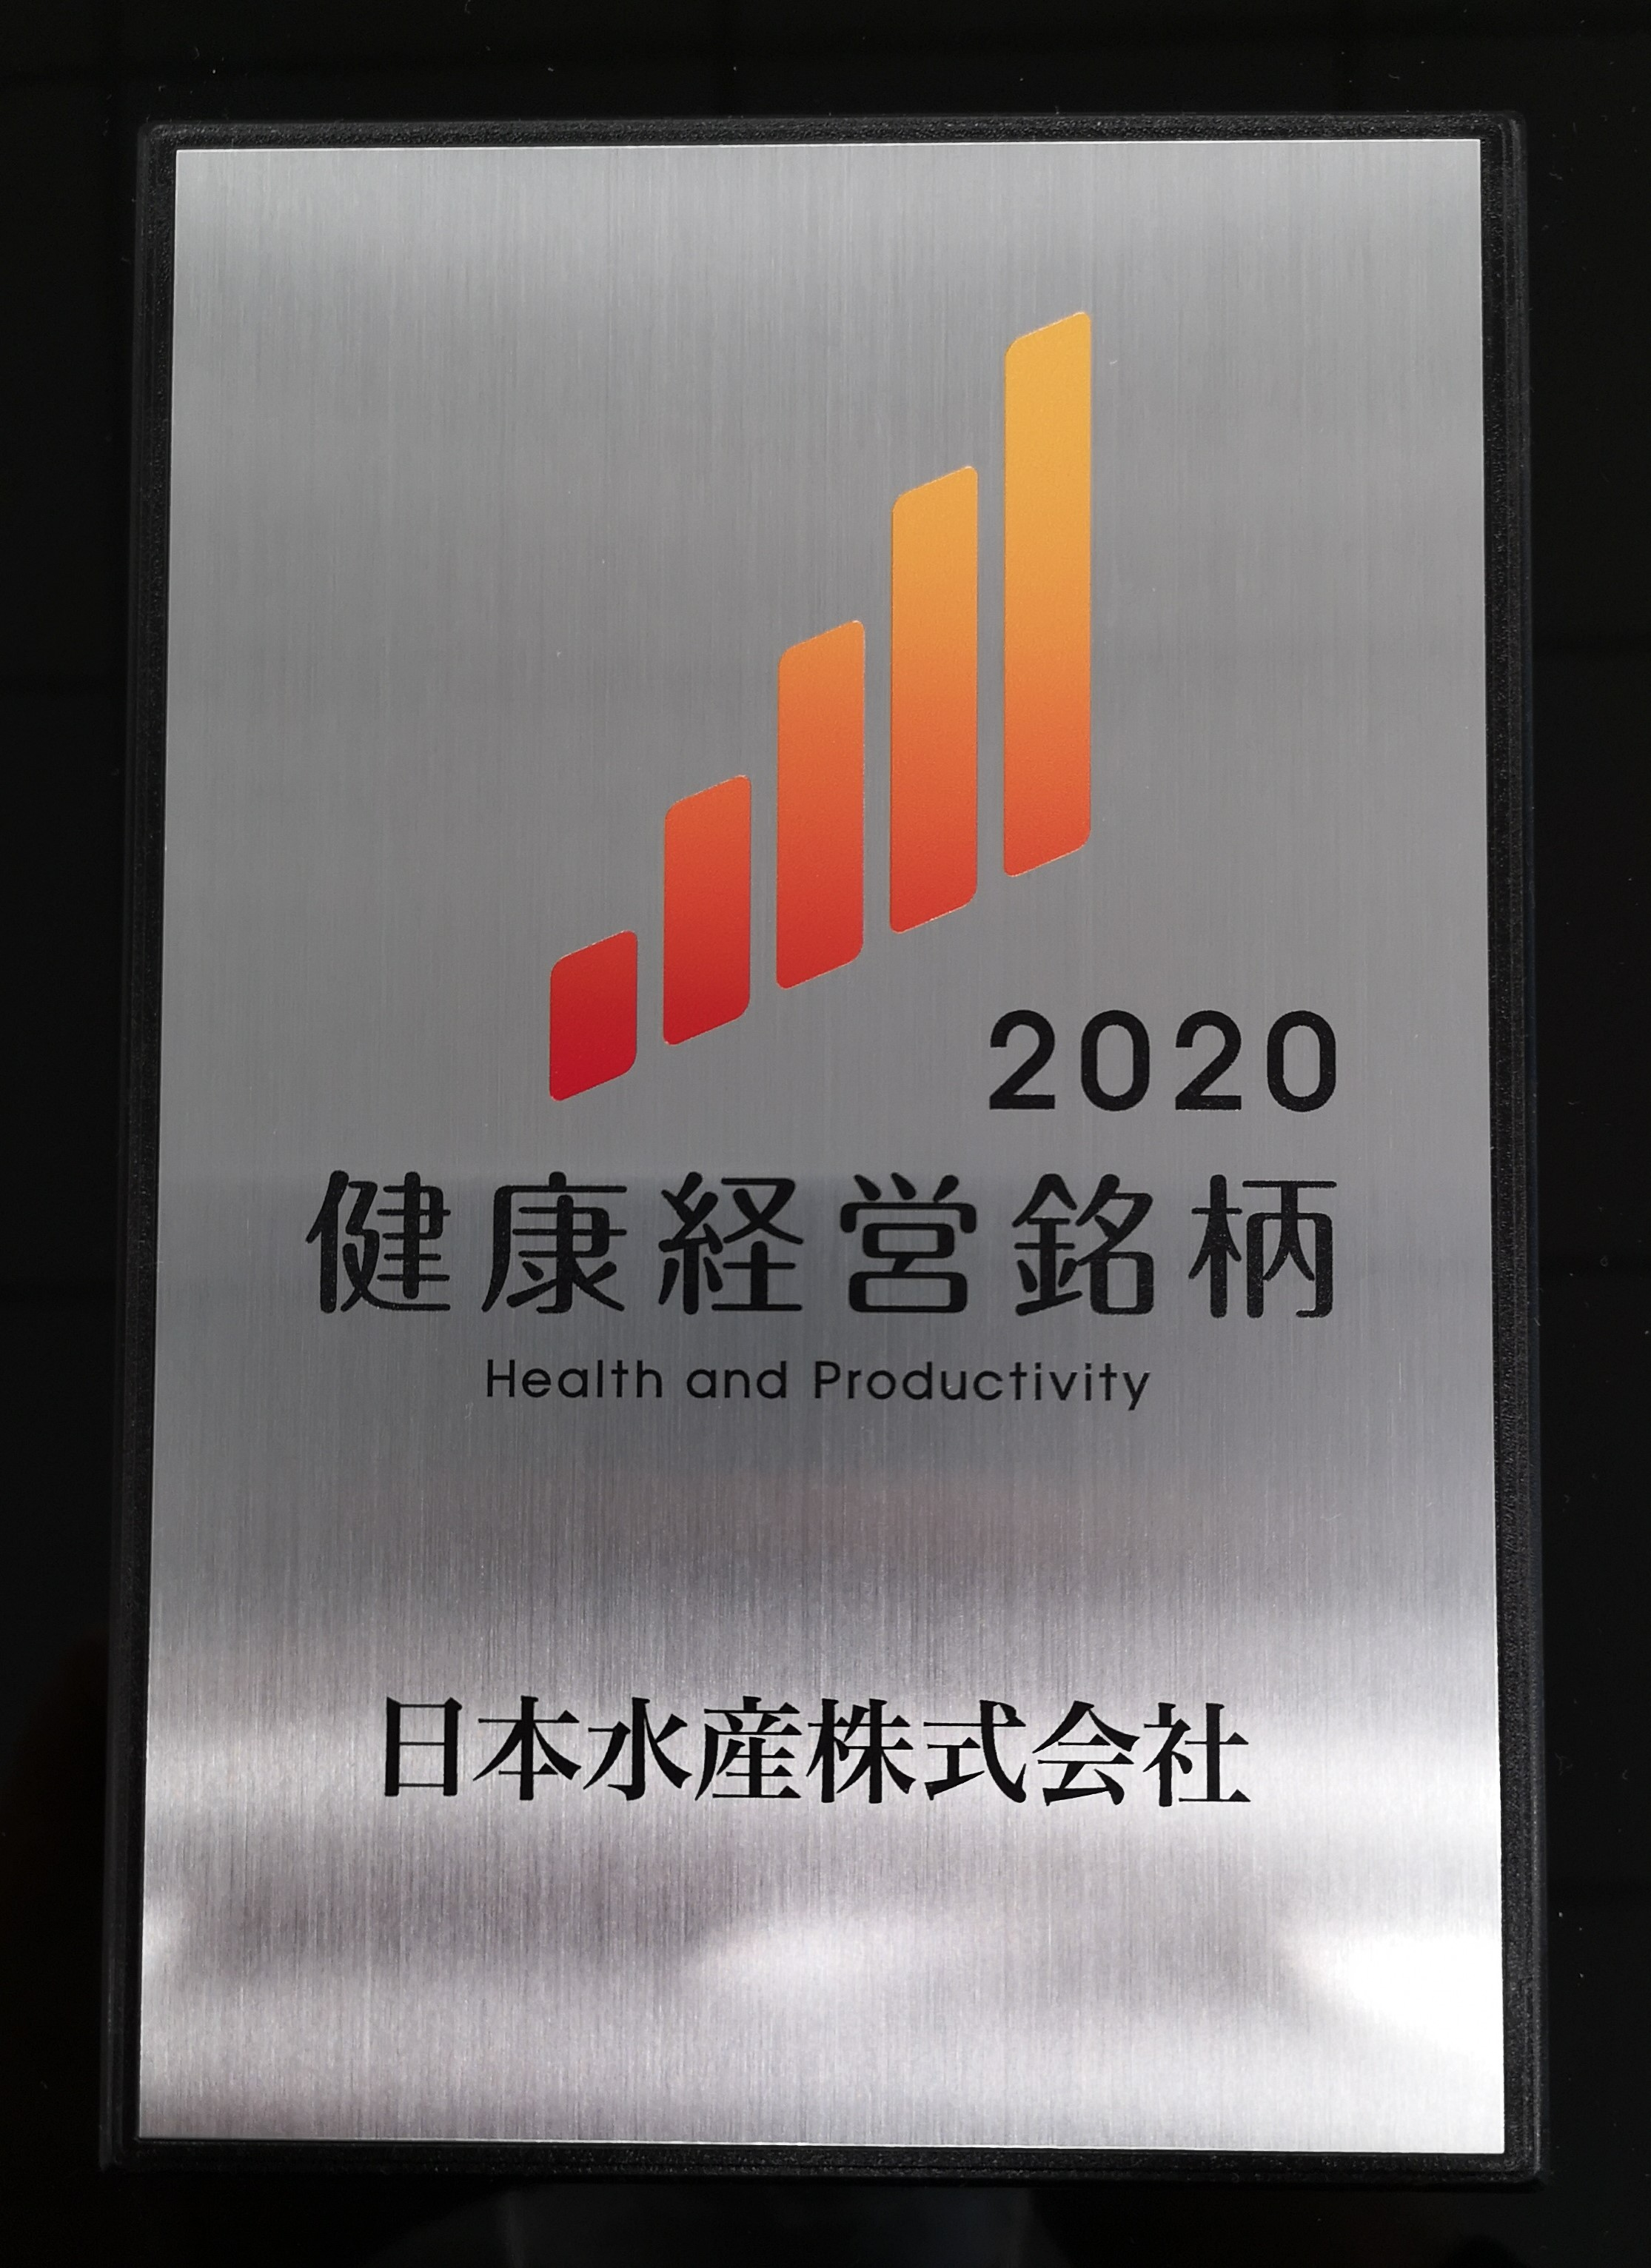 【Picture】Award Plaque